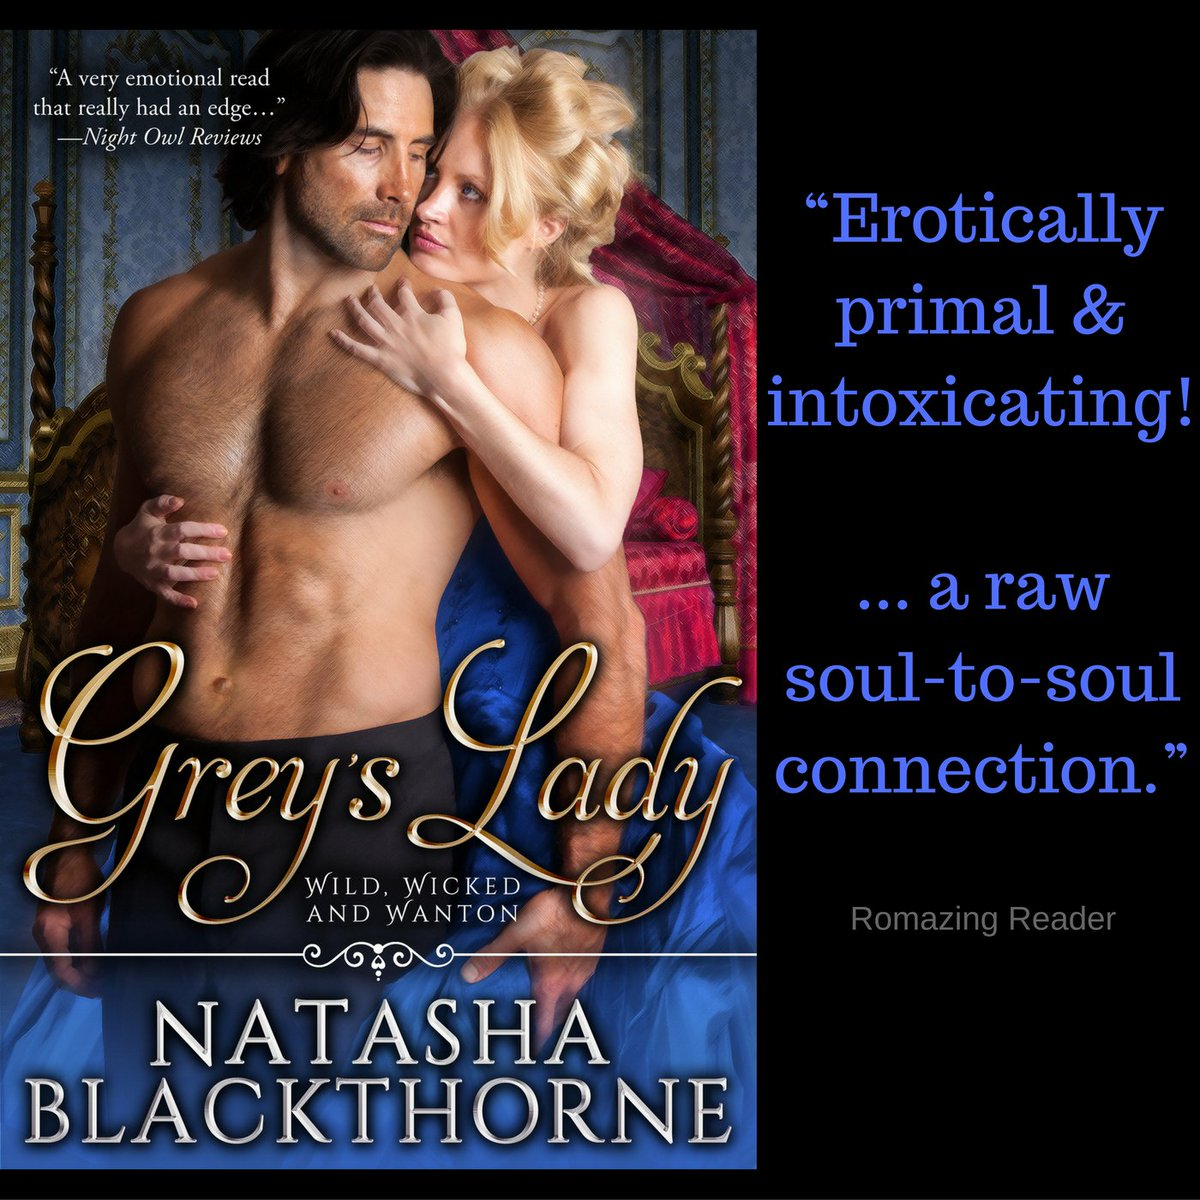 Beth knows what she wants & she is going to get it.  Lucky for Grey, she has chosen him.  Read a Sexy Excerpt➡️    Hot & Steamy Historical  #Romance    #FREE via  #KindleUnlimited ♡❀.•💜•.¸⚜️¸.•💜•.❀♡